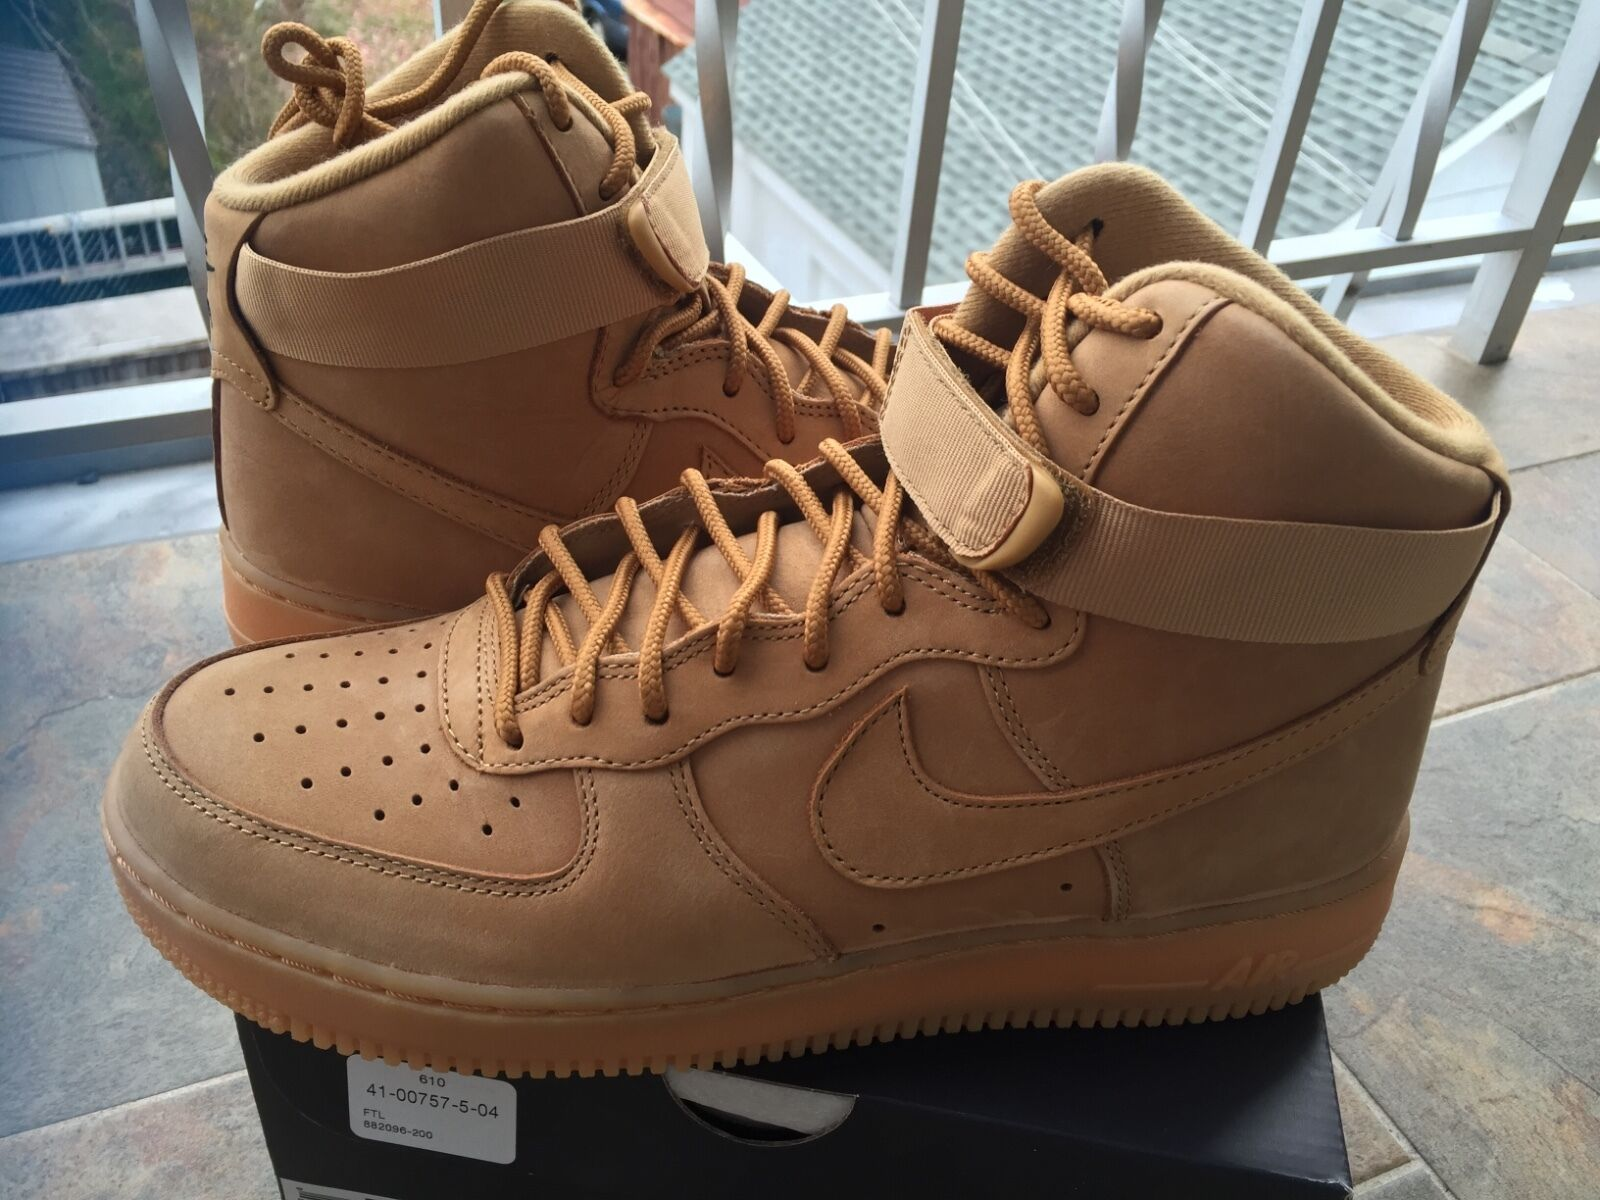 2018 Nike Air Force 1 High '07 LV8 Wheat Flax Gum Brown 882096-2018 Men and GS Comfortable and good-looking